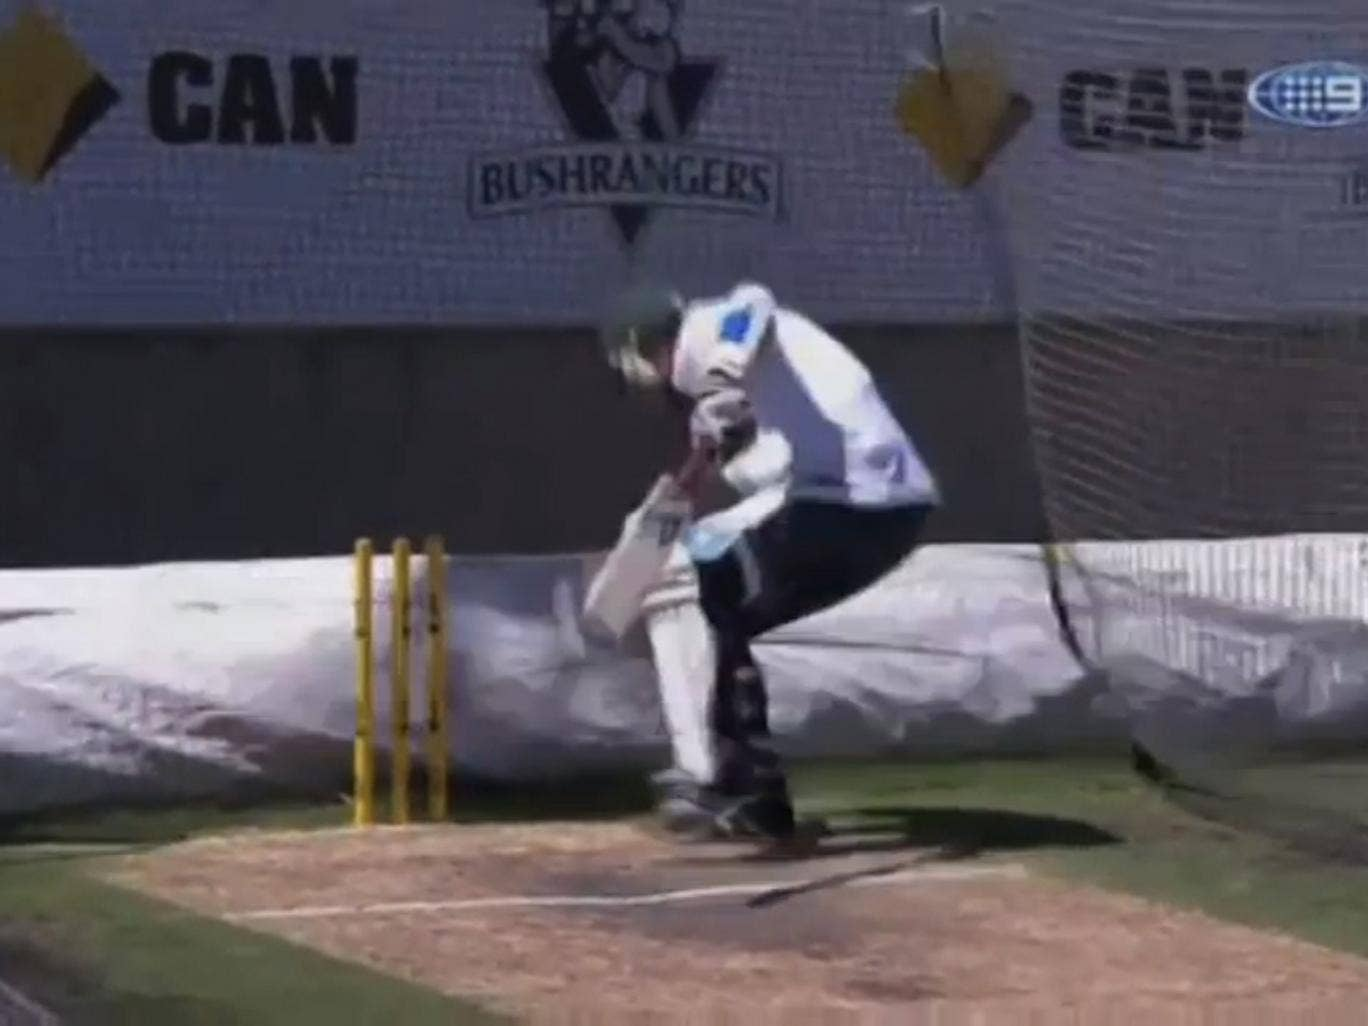 Piers Morgan attempts to avoid a Brett Lee bouncer aimed at his head, with little success